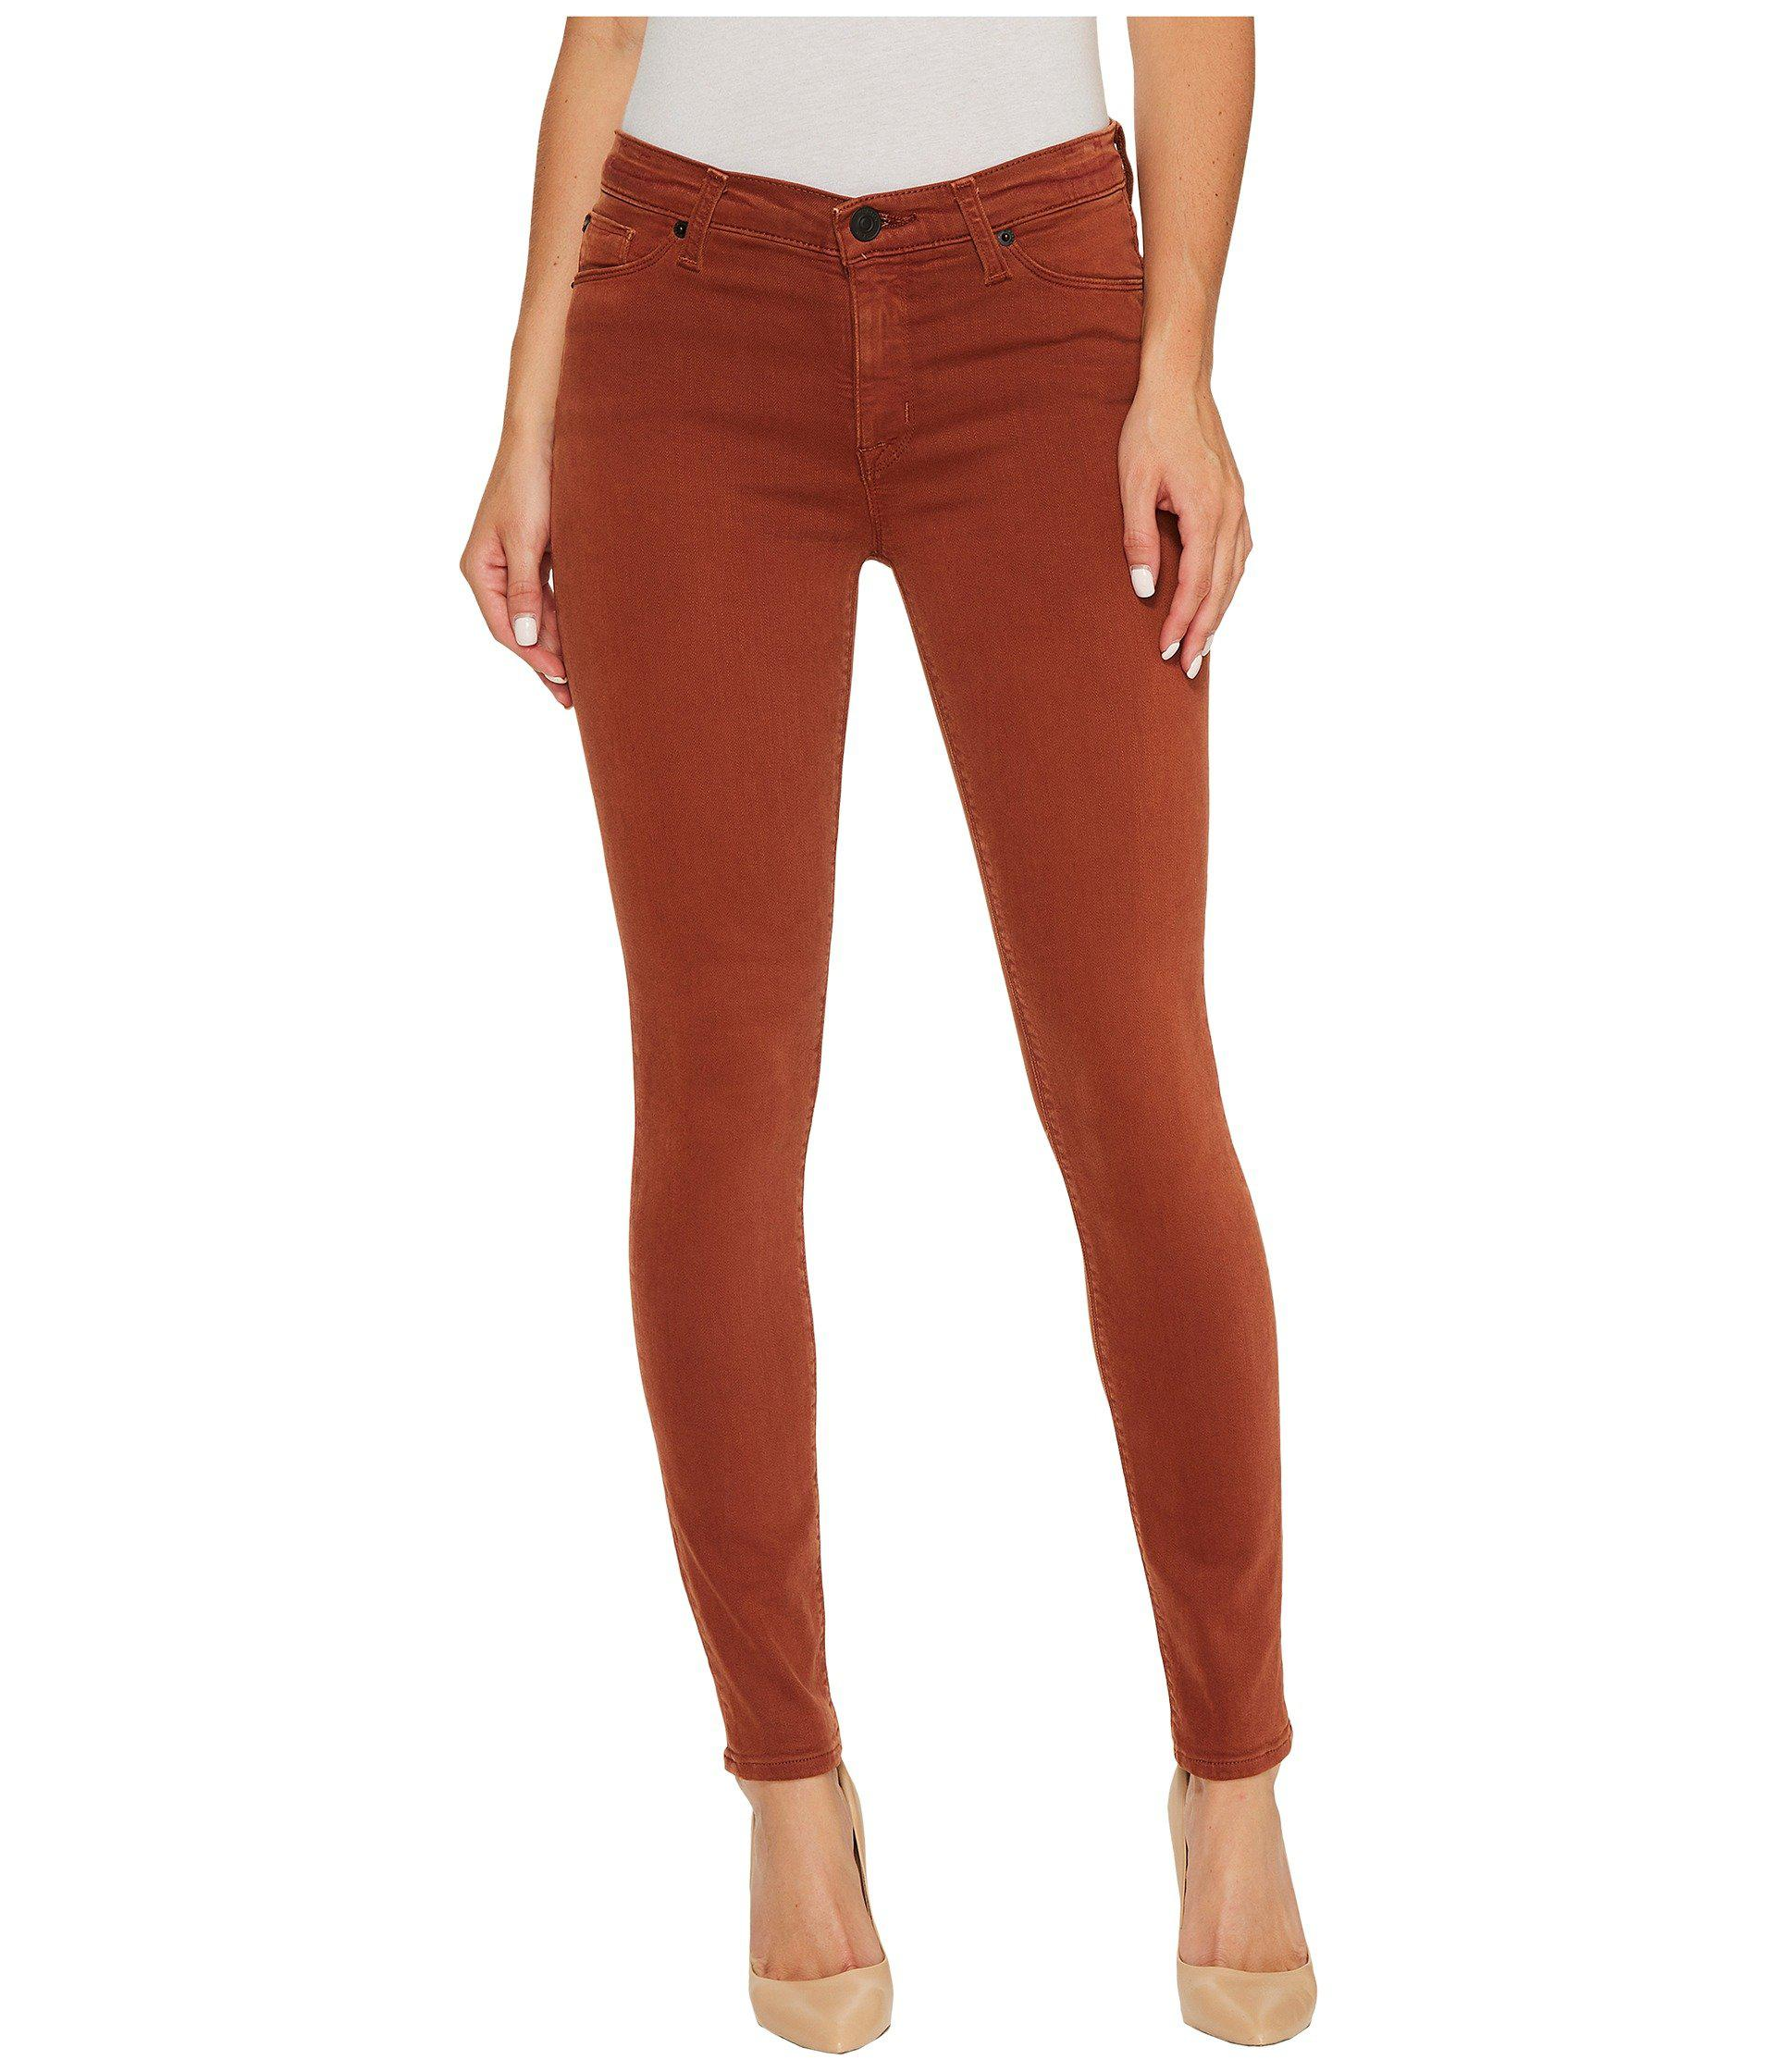 011b765ef4d Lyst - Hudson Jeans Nico Mid-rise Ankle Super Skinny In Distressed ...